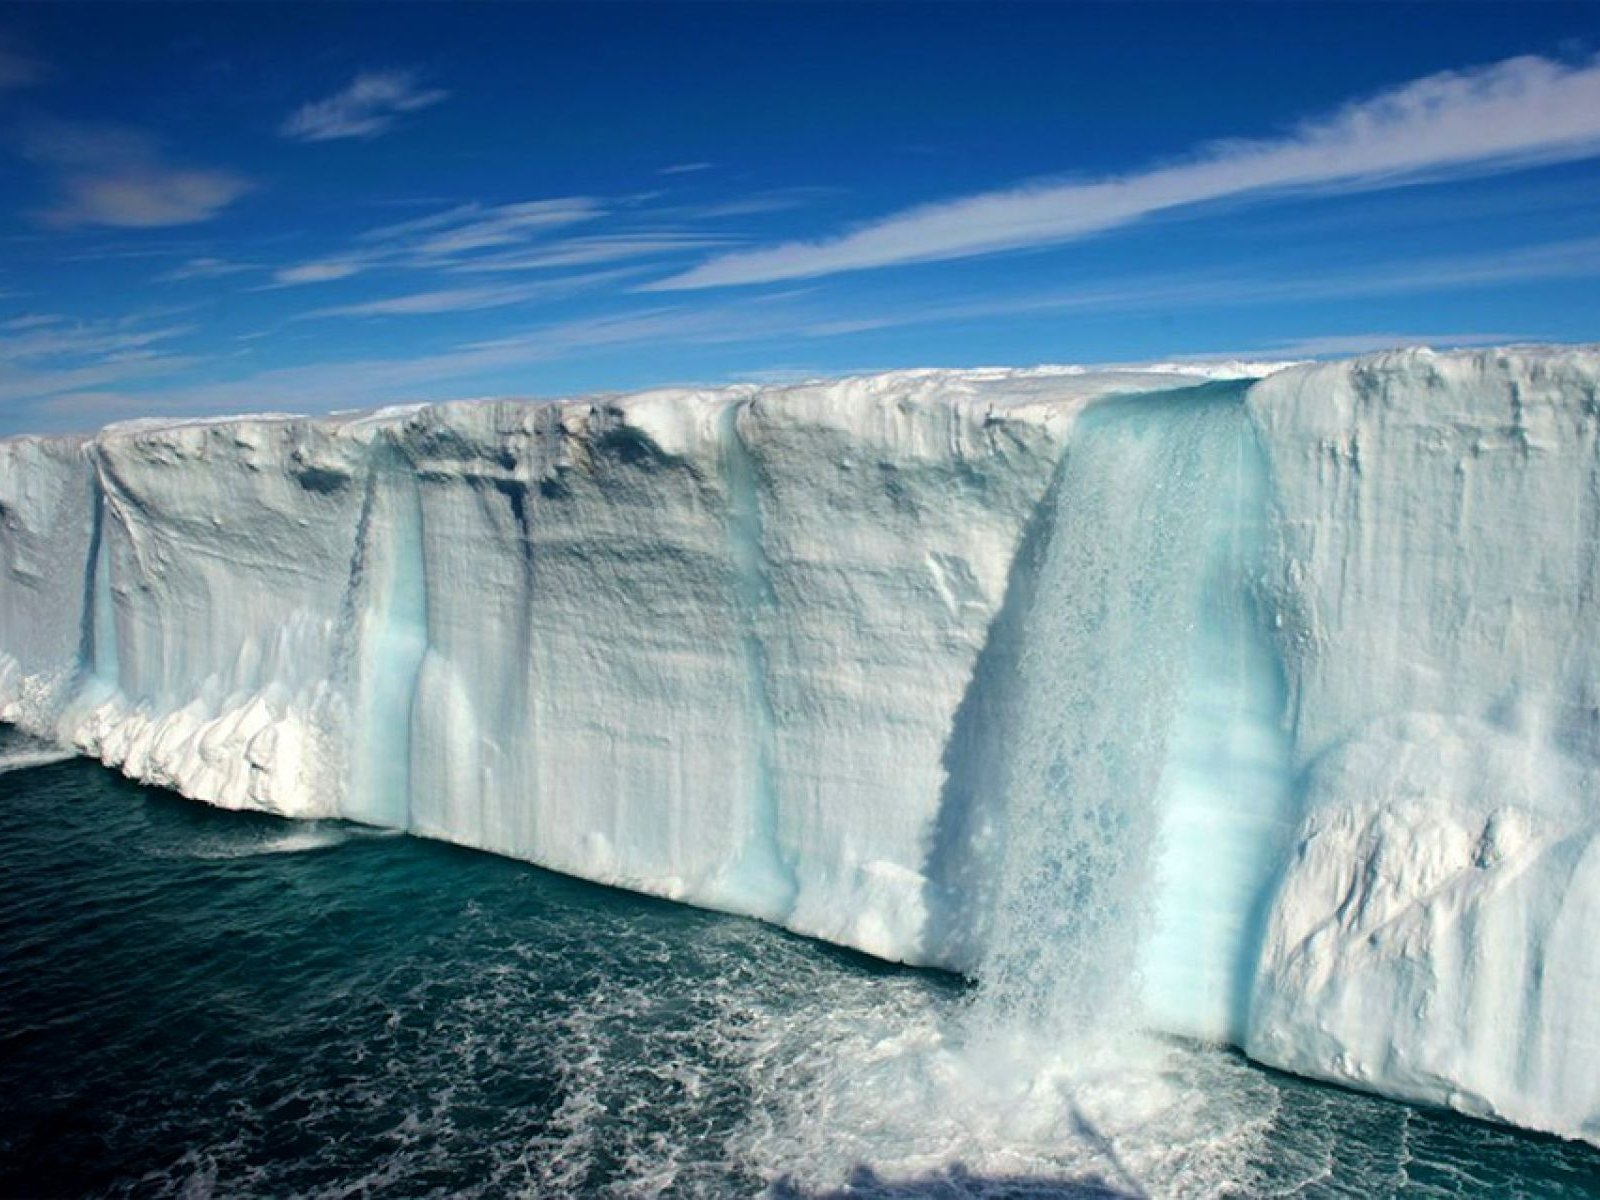 How to see glacial waterfalls in Svalbard